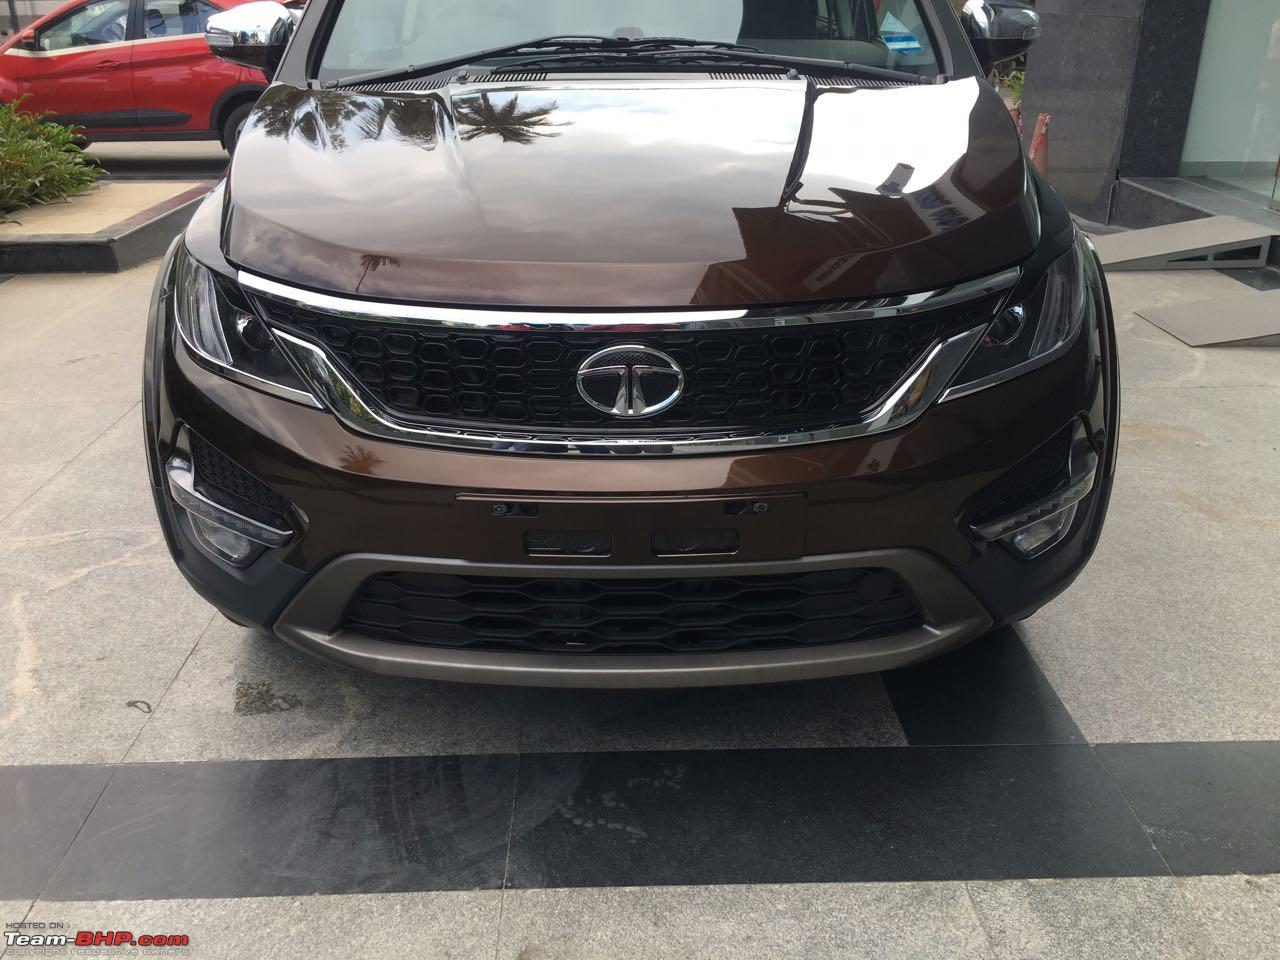 Tata Hexa Downtown special edition front section